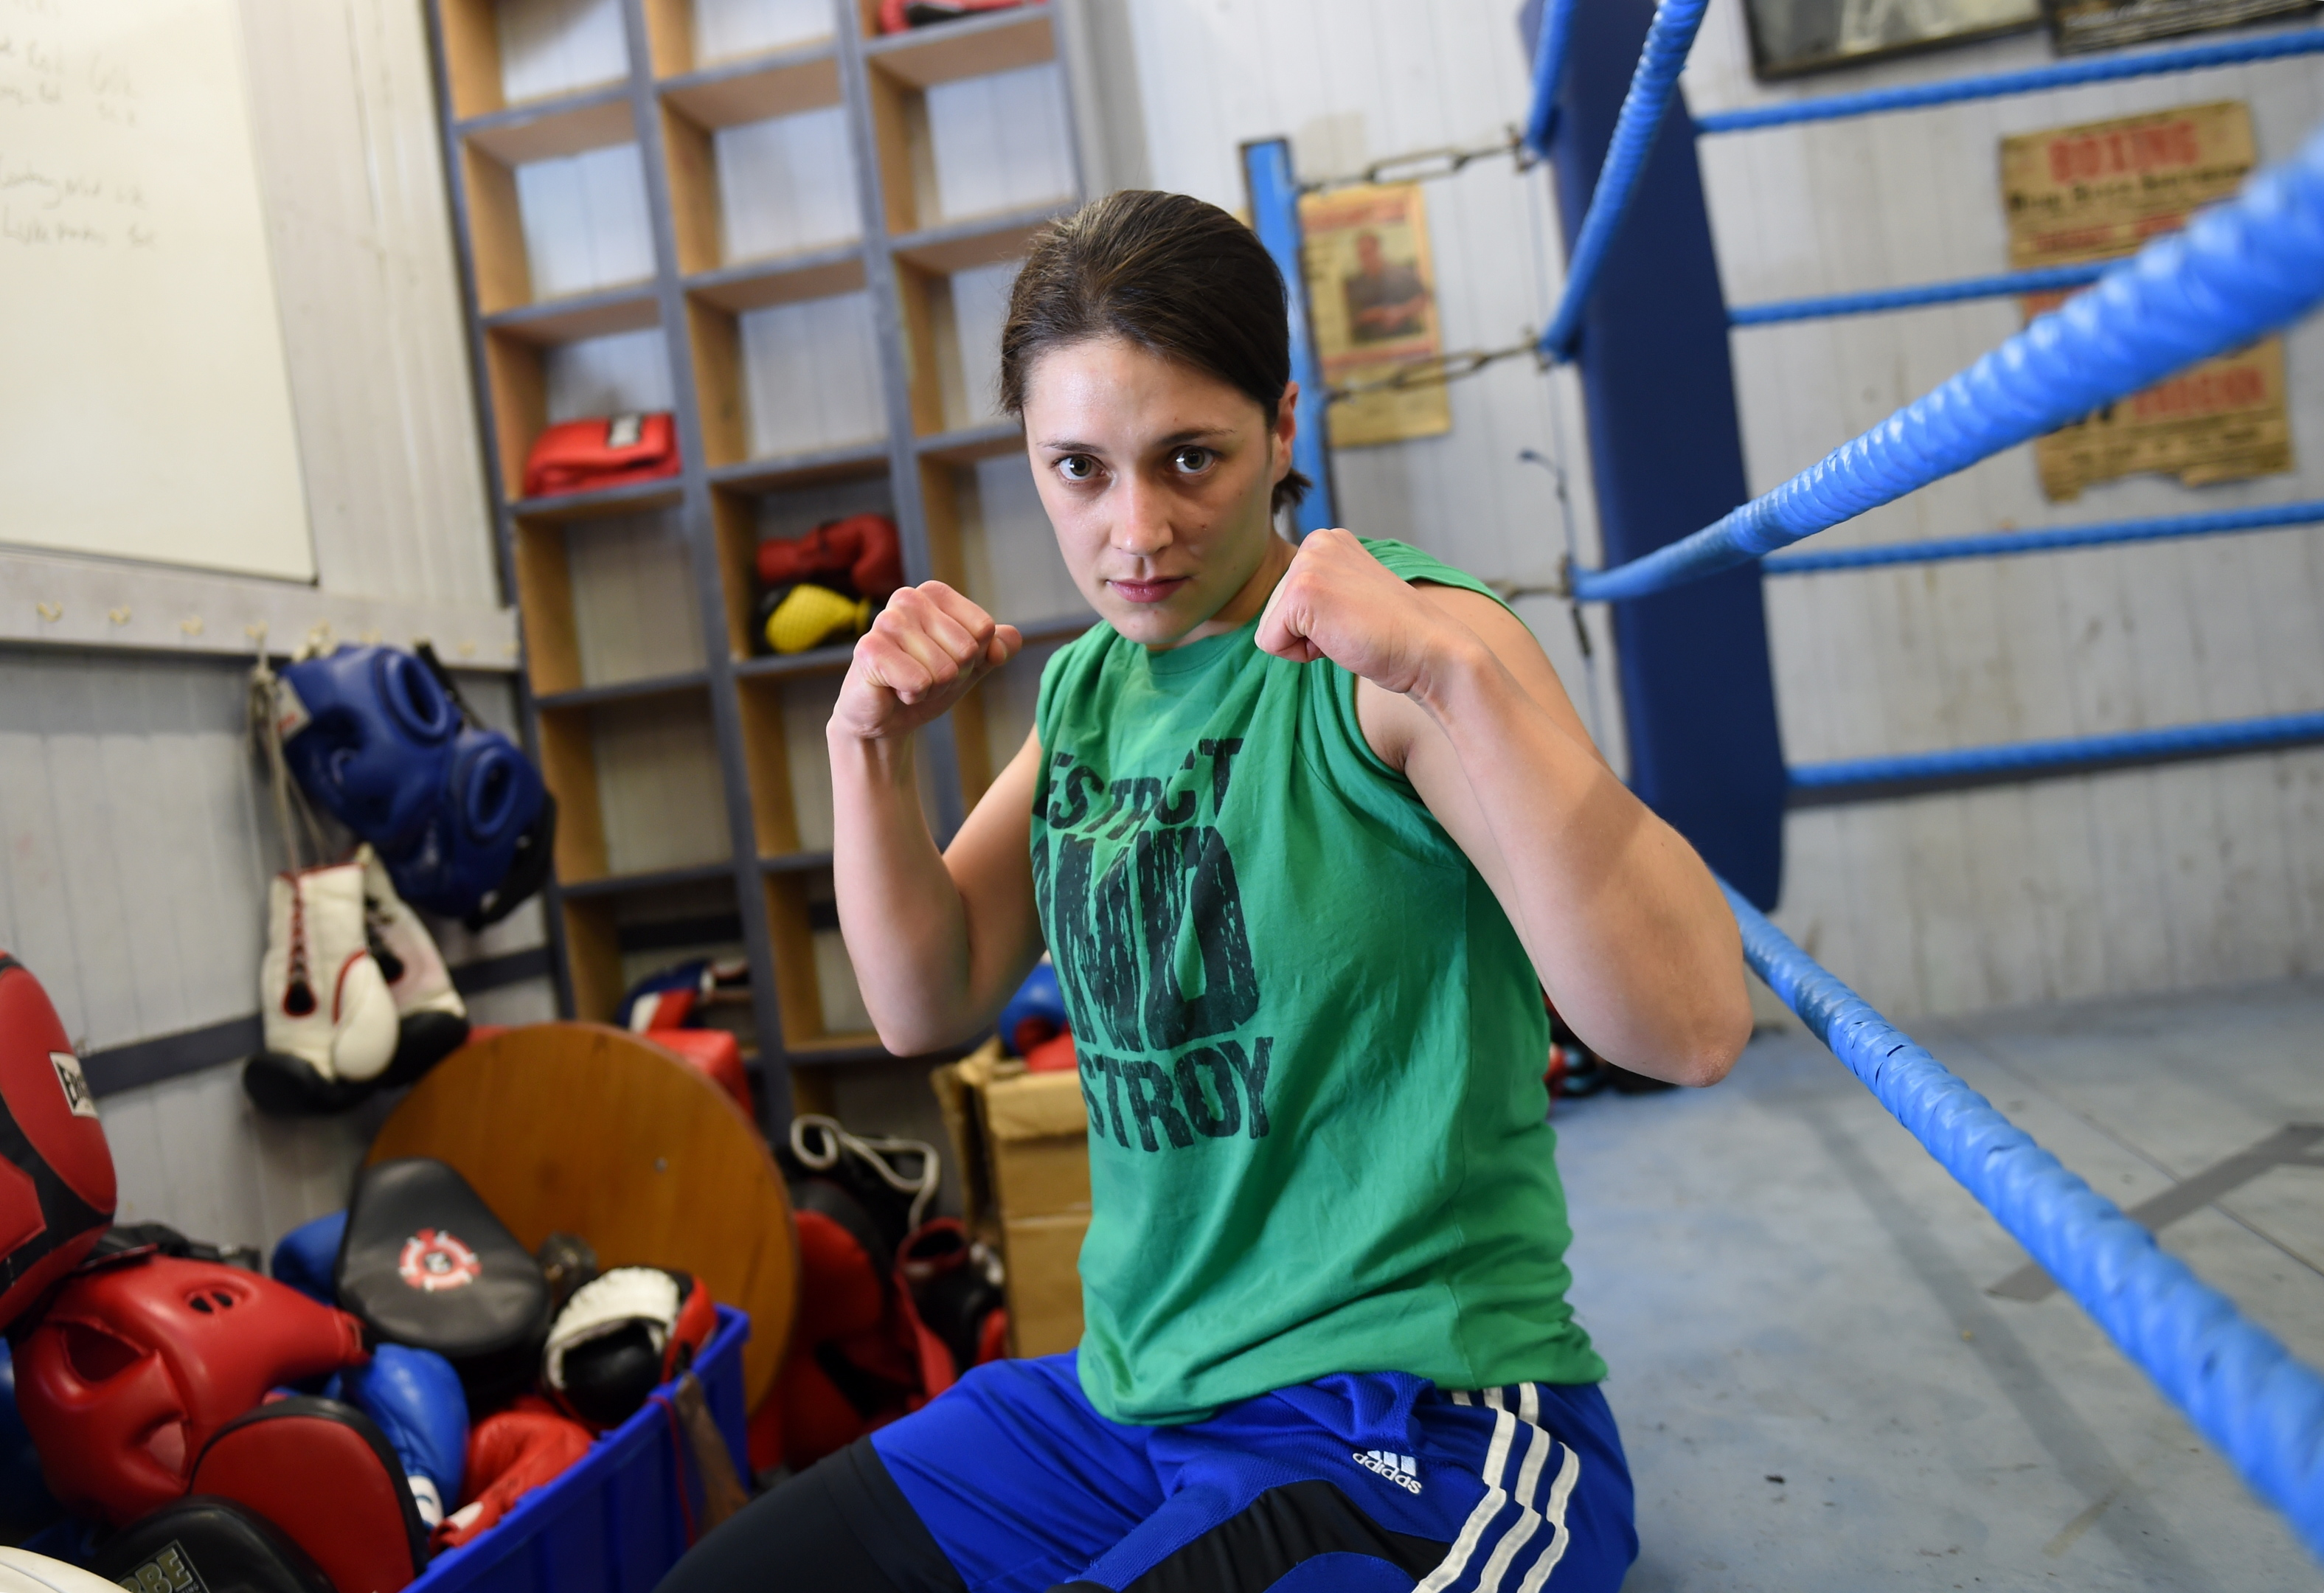 Scotland's first female professional boxer Kristen Fraser.